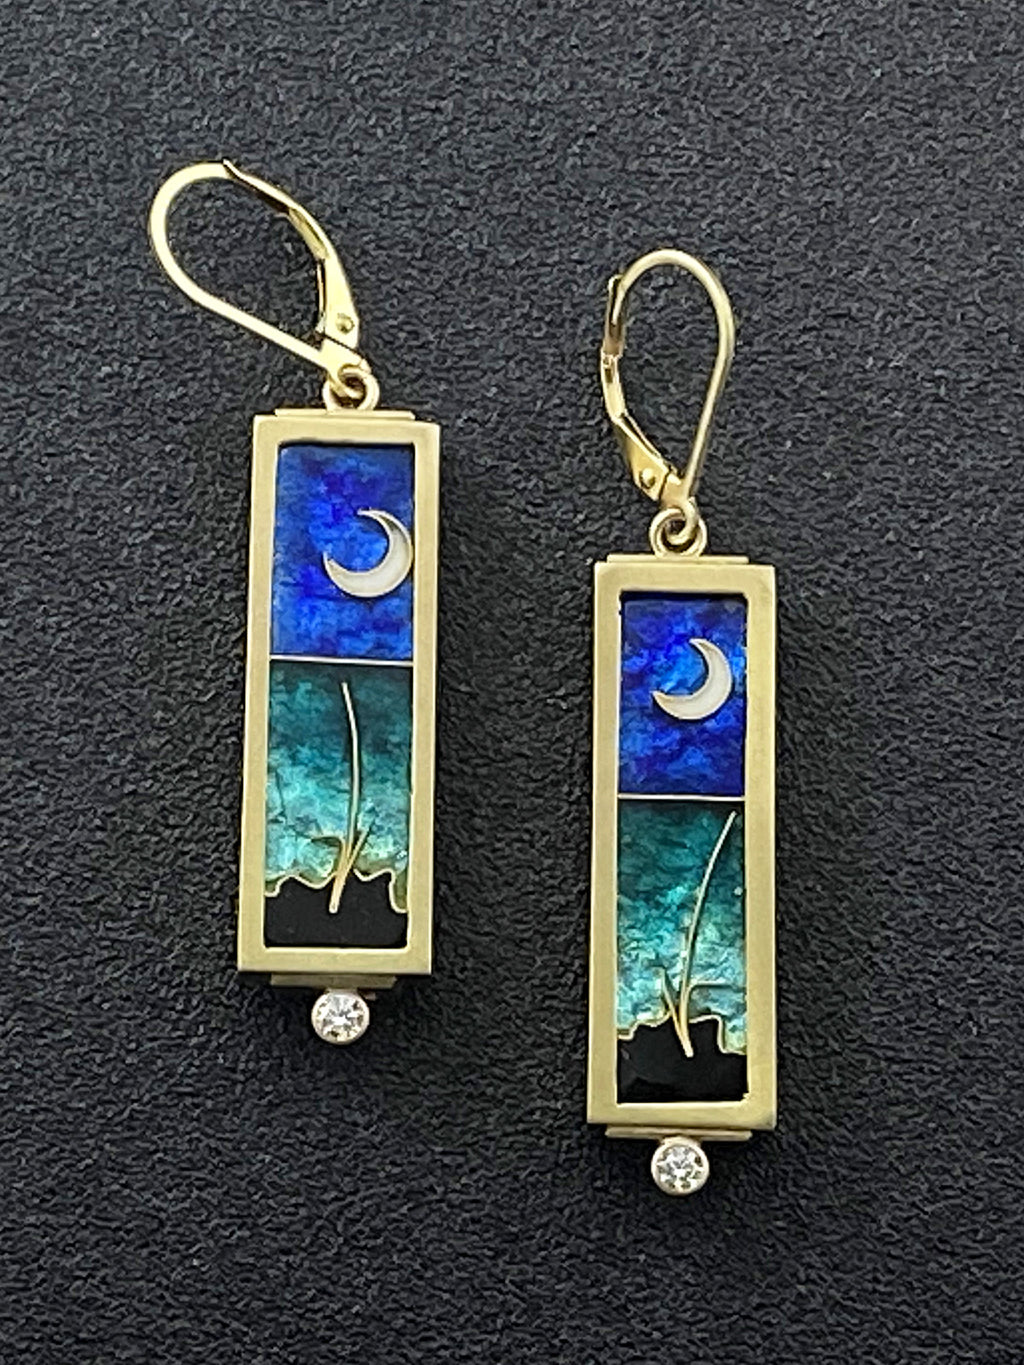 Gulf Coast - Moonscape Earrings